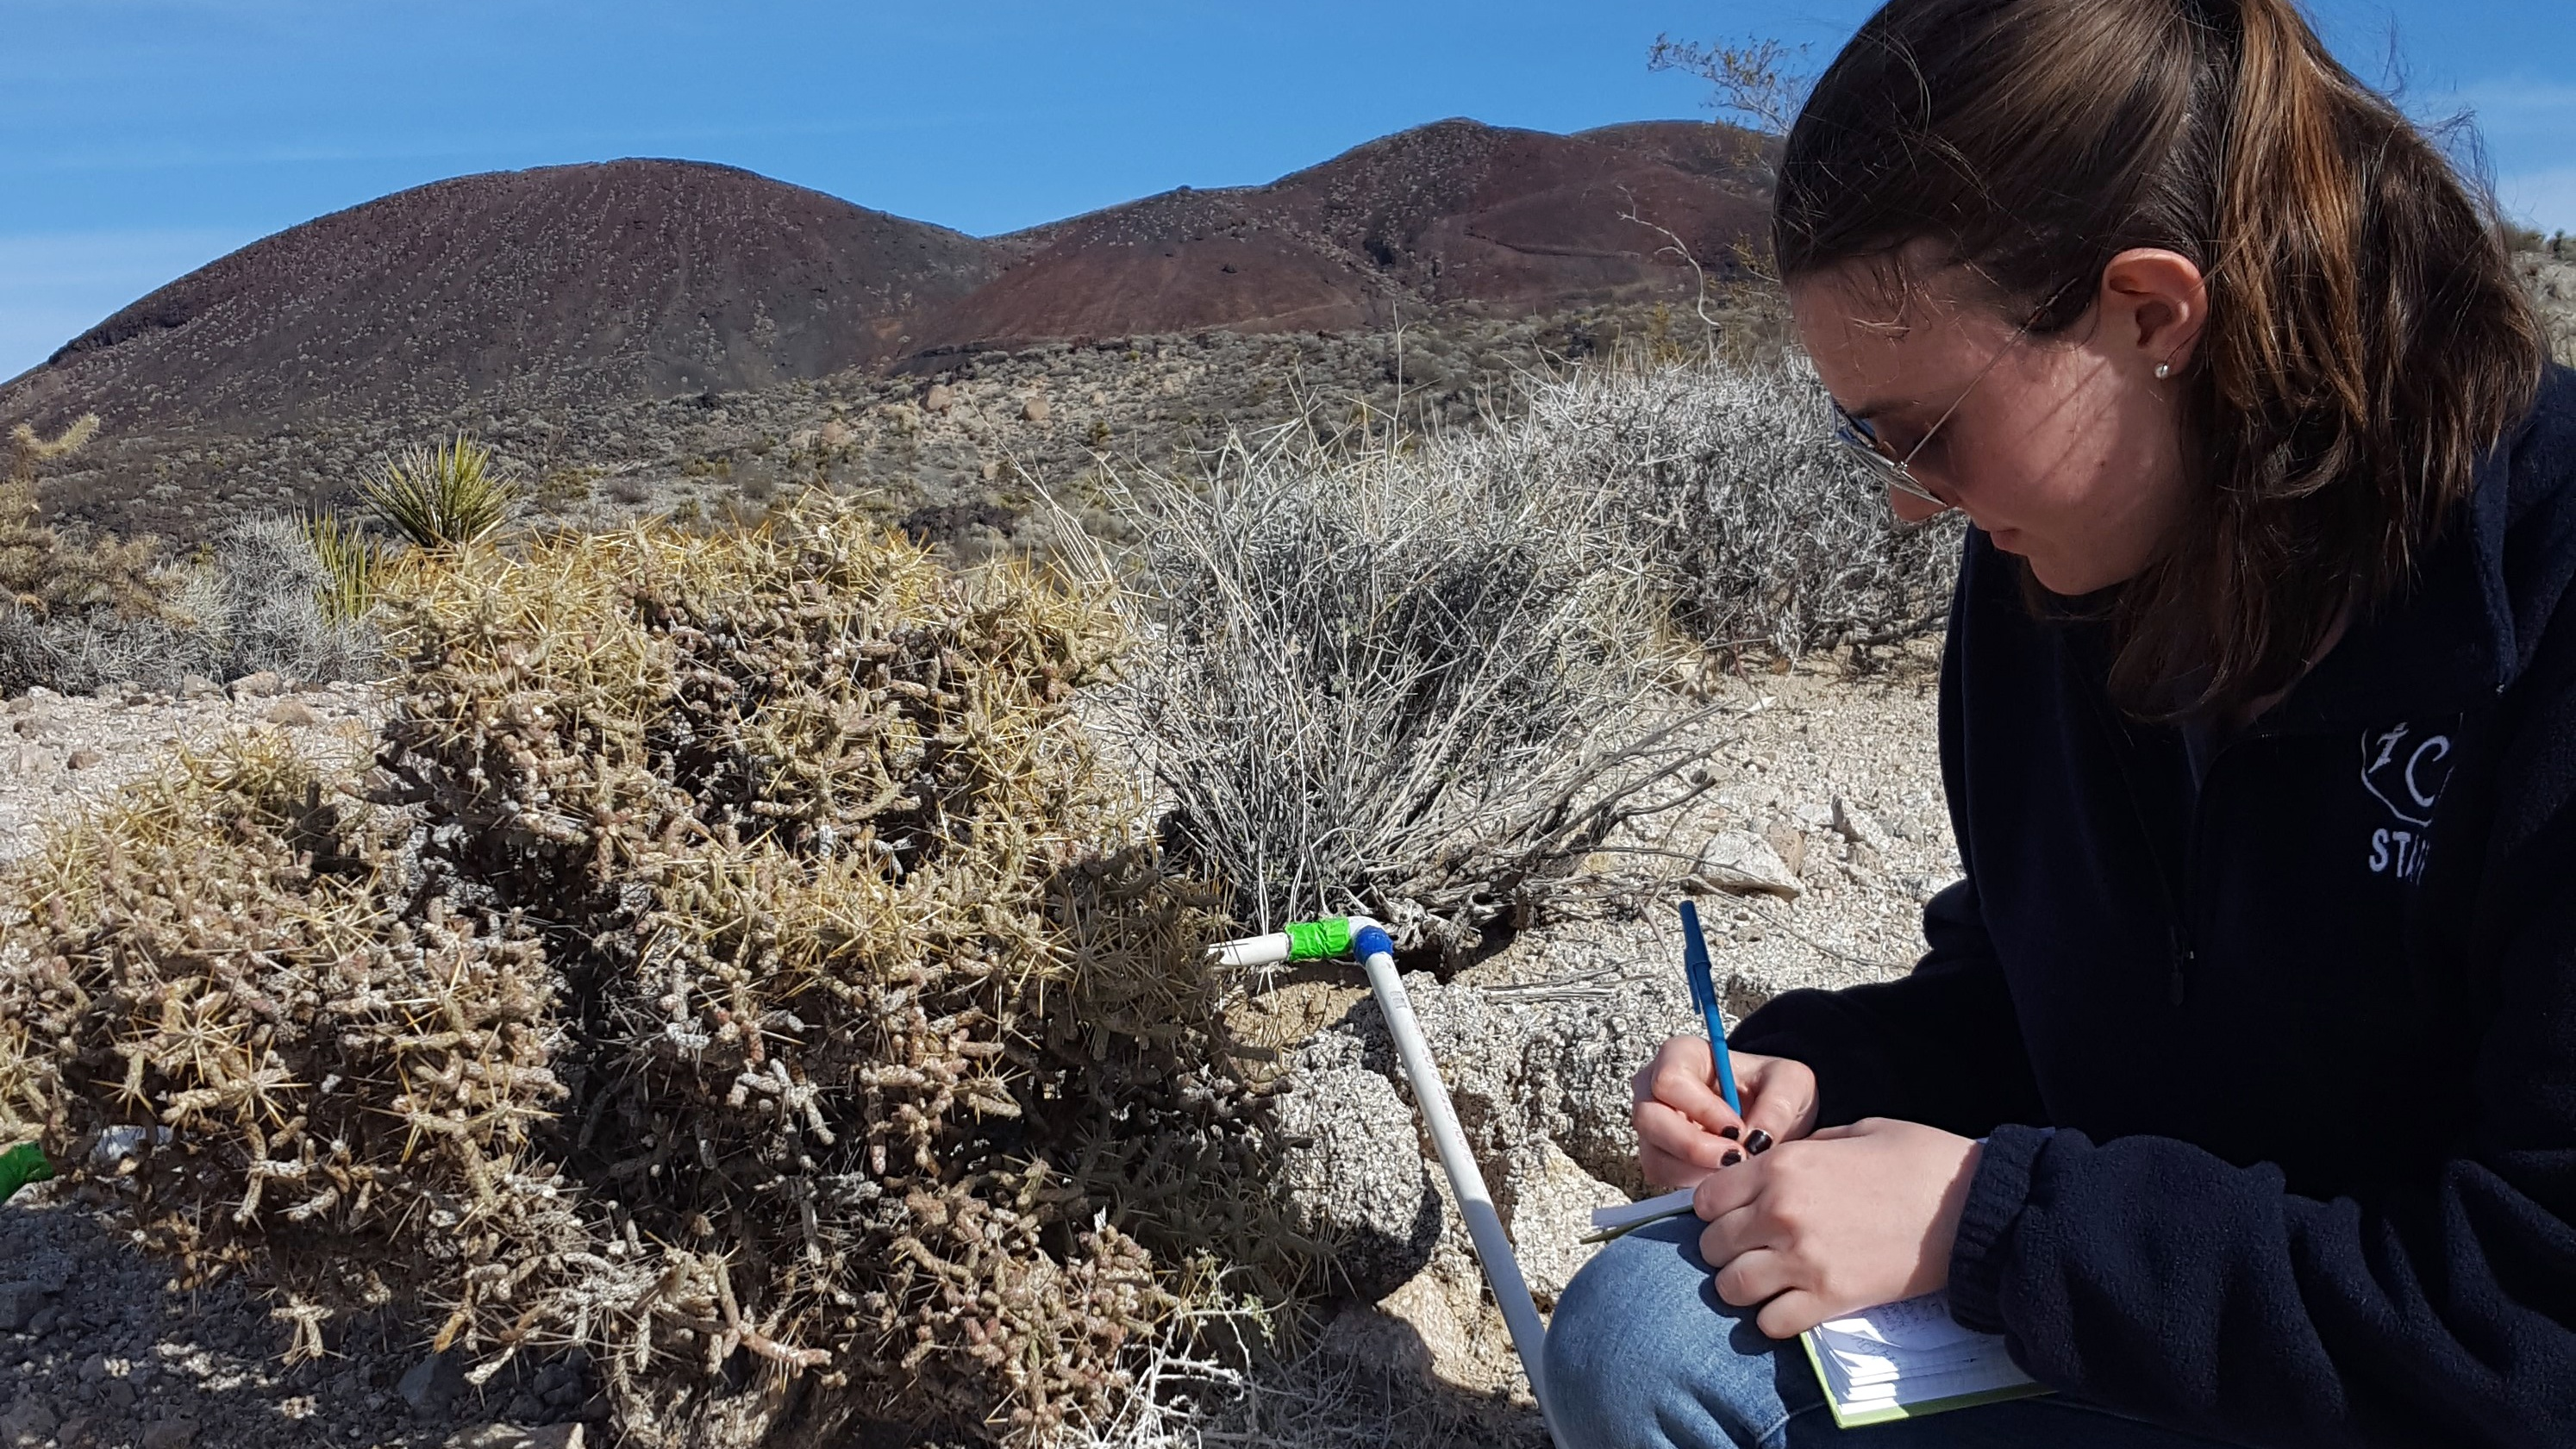 Blog_Braverman5.jpg Documenting an observation of a pencil cholla cactus